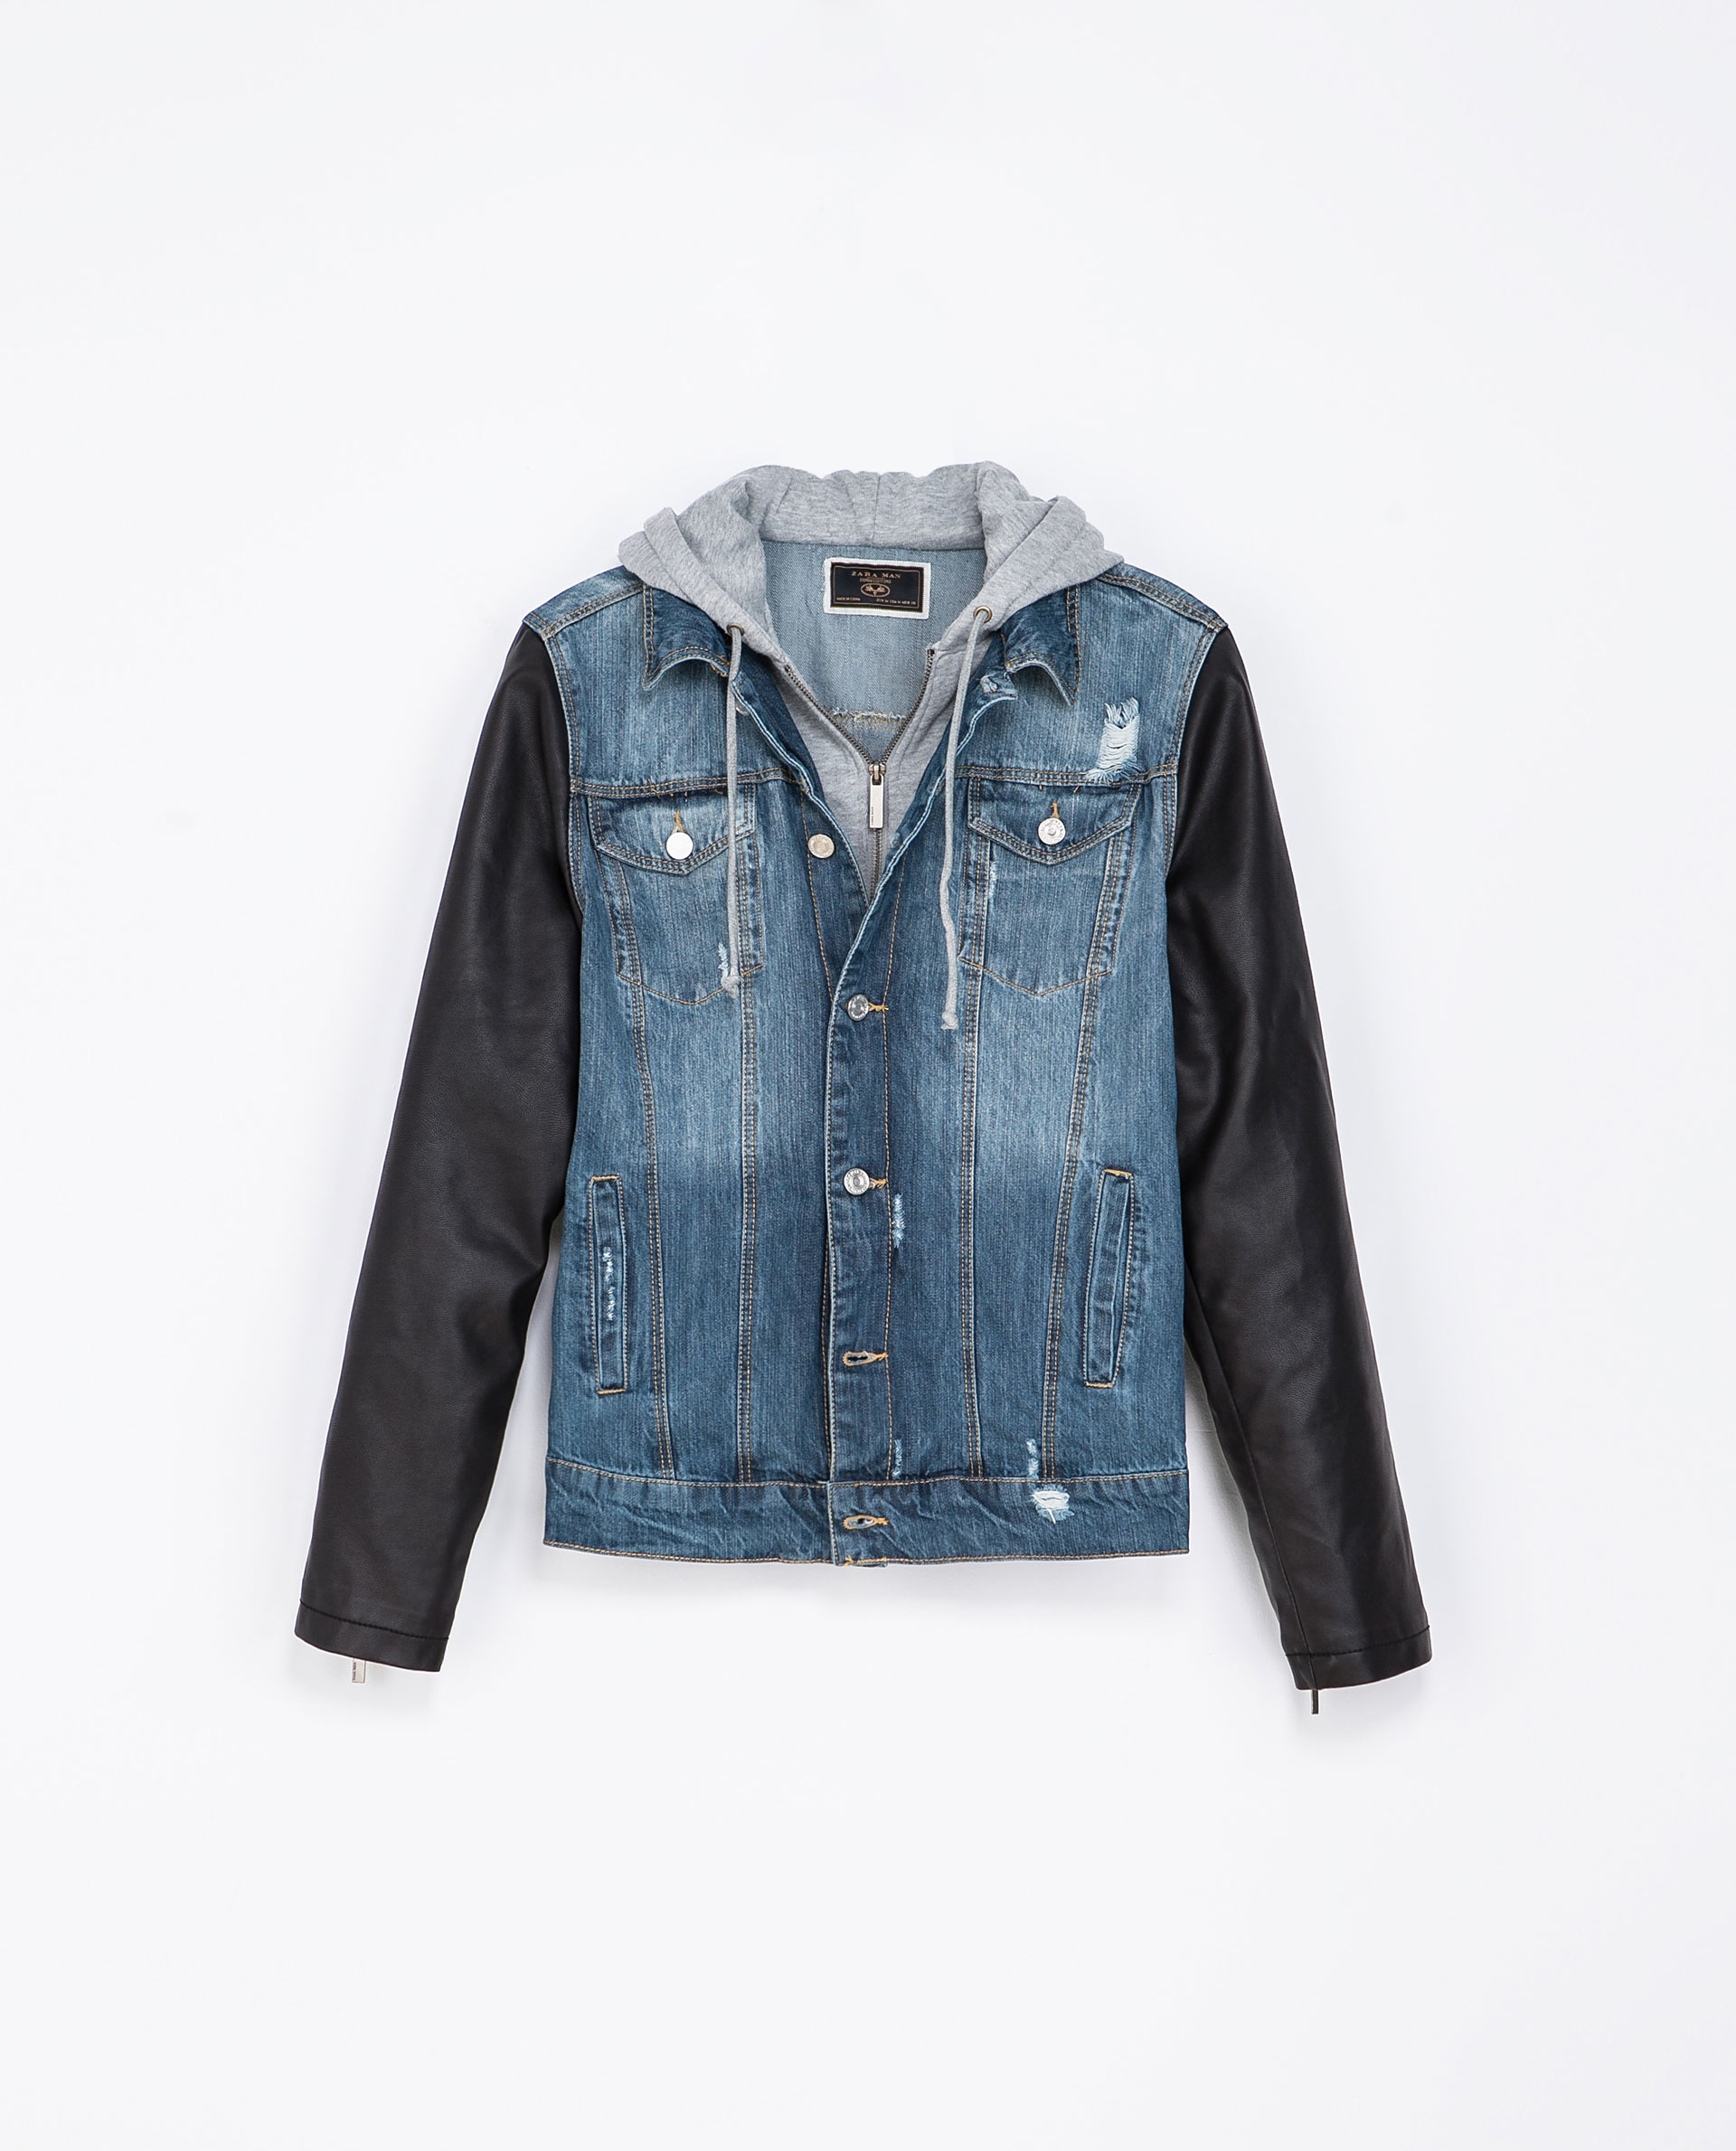 Free shipping and returns on Men's Denim Coats & Jackets at missionpan.gq Skip navigation. Give a little wow. The best gifts are here, every day of the year. Cashmere & Cashmere Blend Corduroy Cotton & Cotton Blend Denim Down Down Alternative Elastane Faux Fur Faux Leather Faux Shearling Fleece Fur (Genuine) Leather Men's Denim Coats.